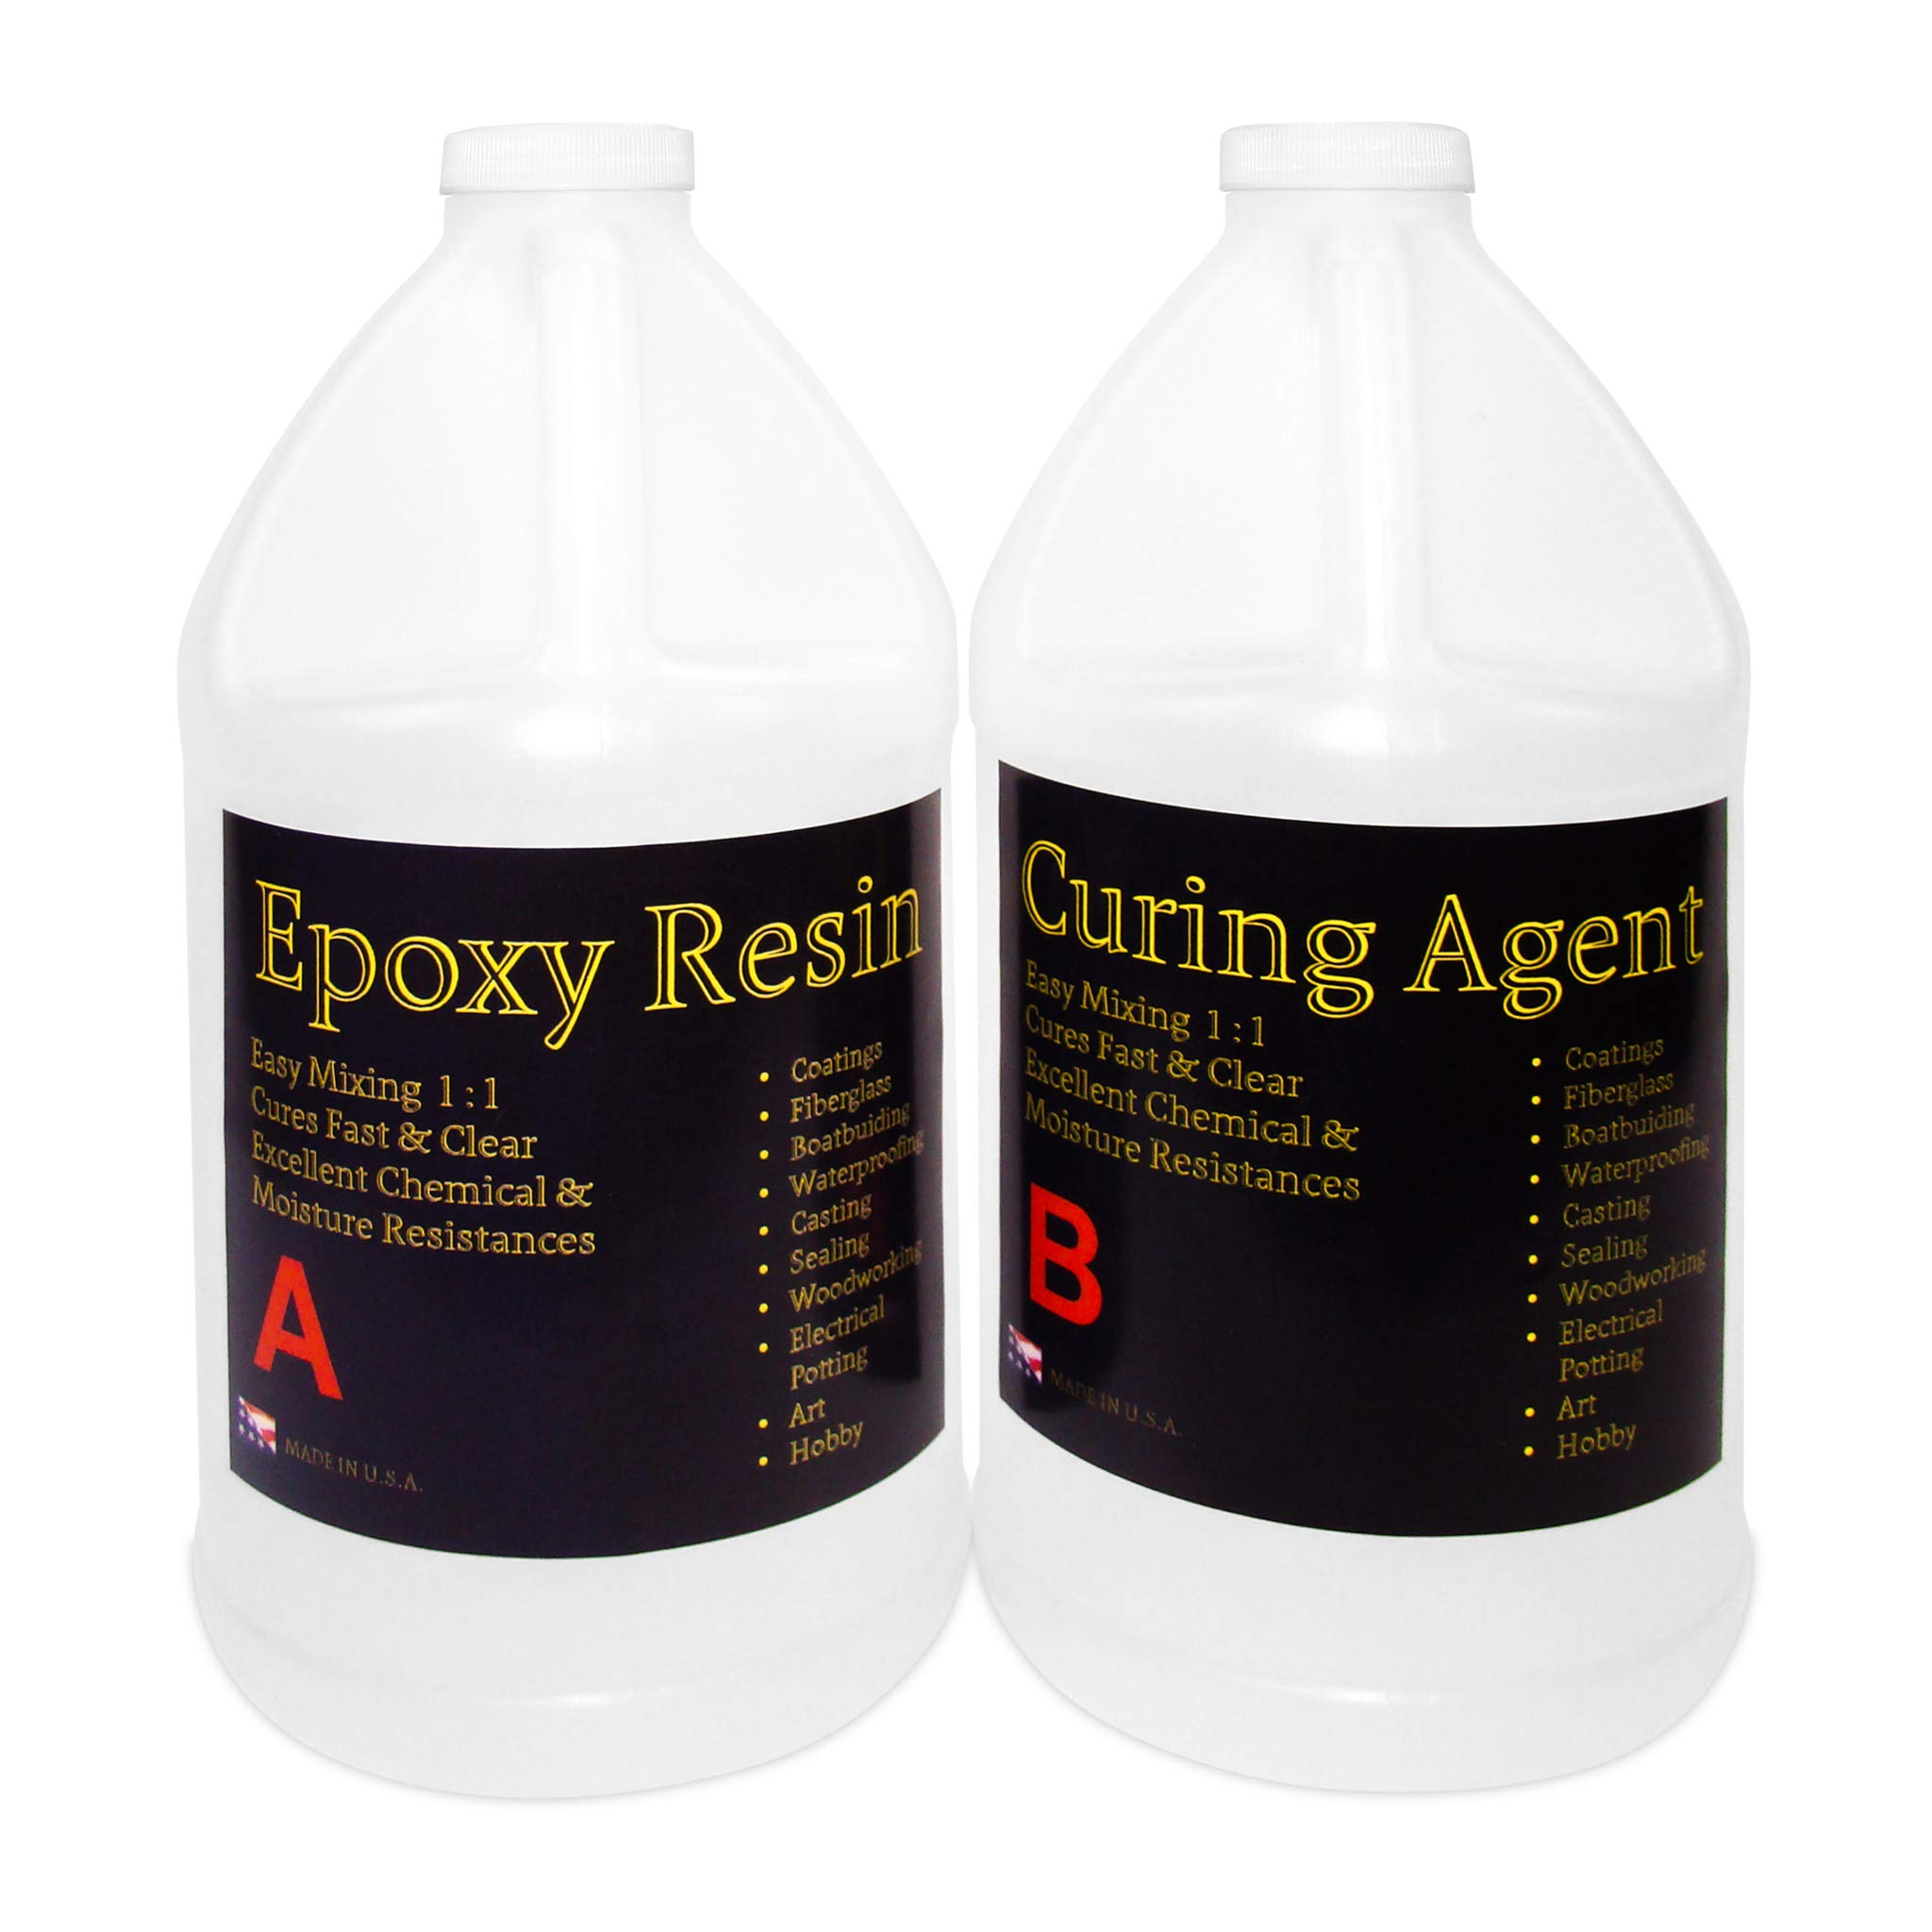 Clear Epoxy Resin for Table Tops, Bars, Fiberglass, Concrete - Professional Grade High Gloss Finish Multi-Purpose Resin - 2 Gallon Kit